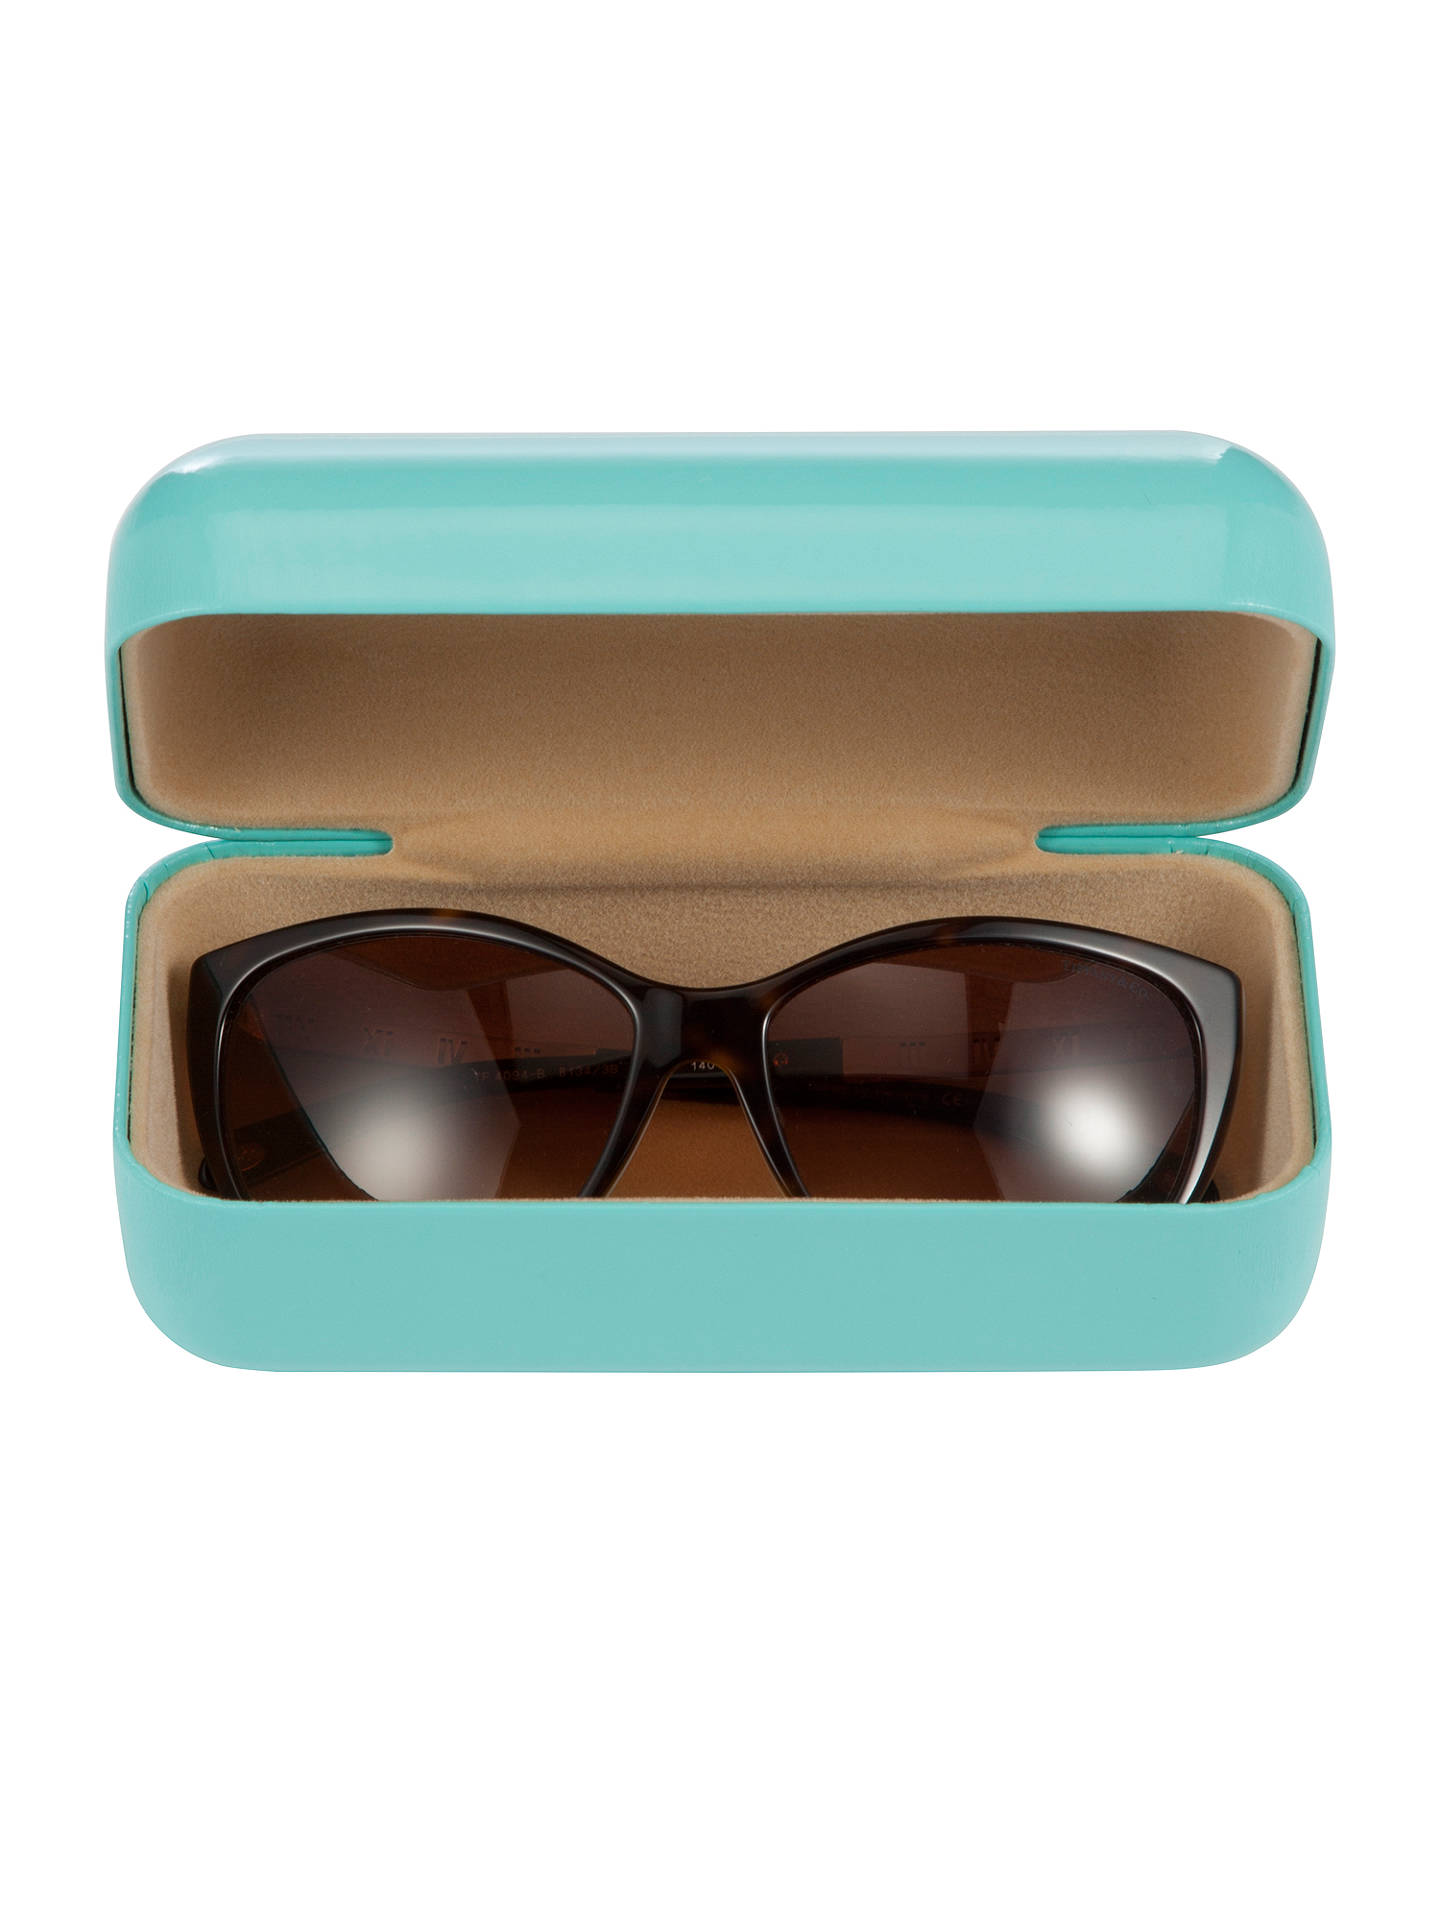 BuyTiffany & Co TF4094B Sunglasses, Blue/Brown Online at johnlewis.com